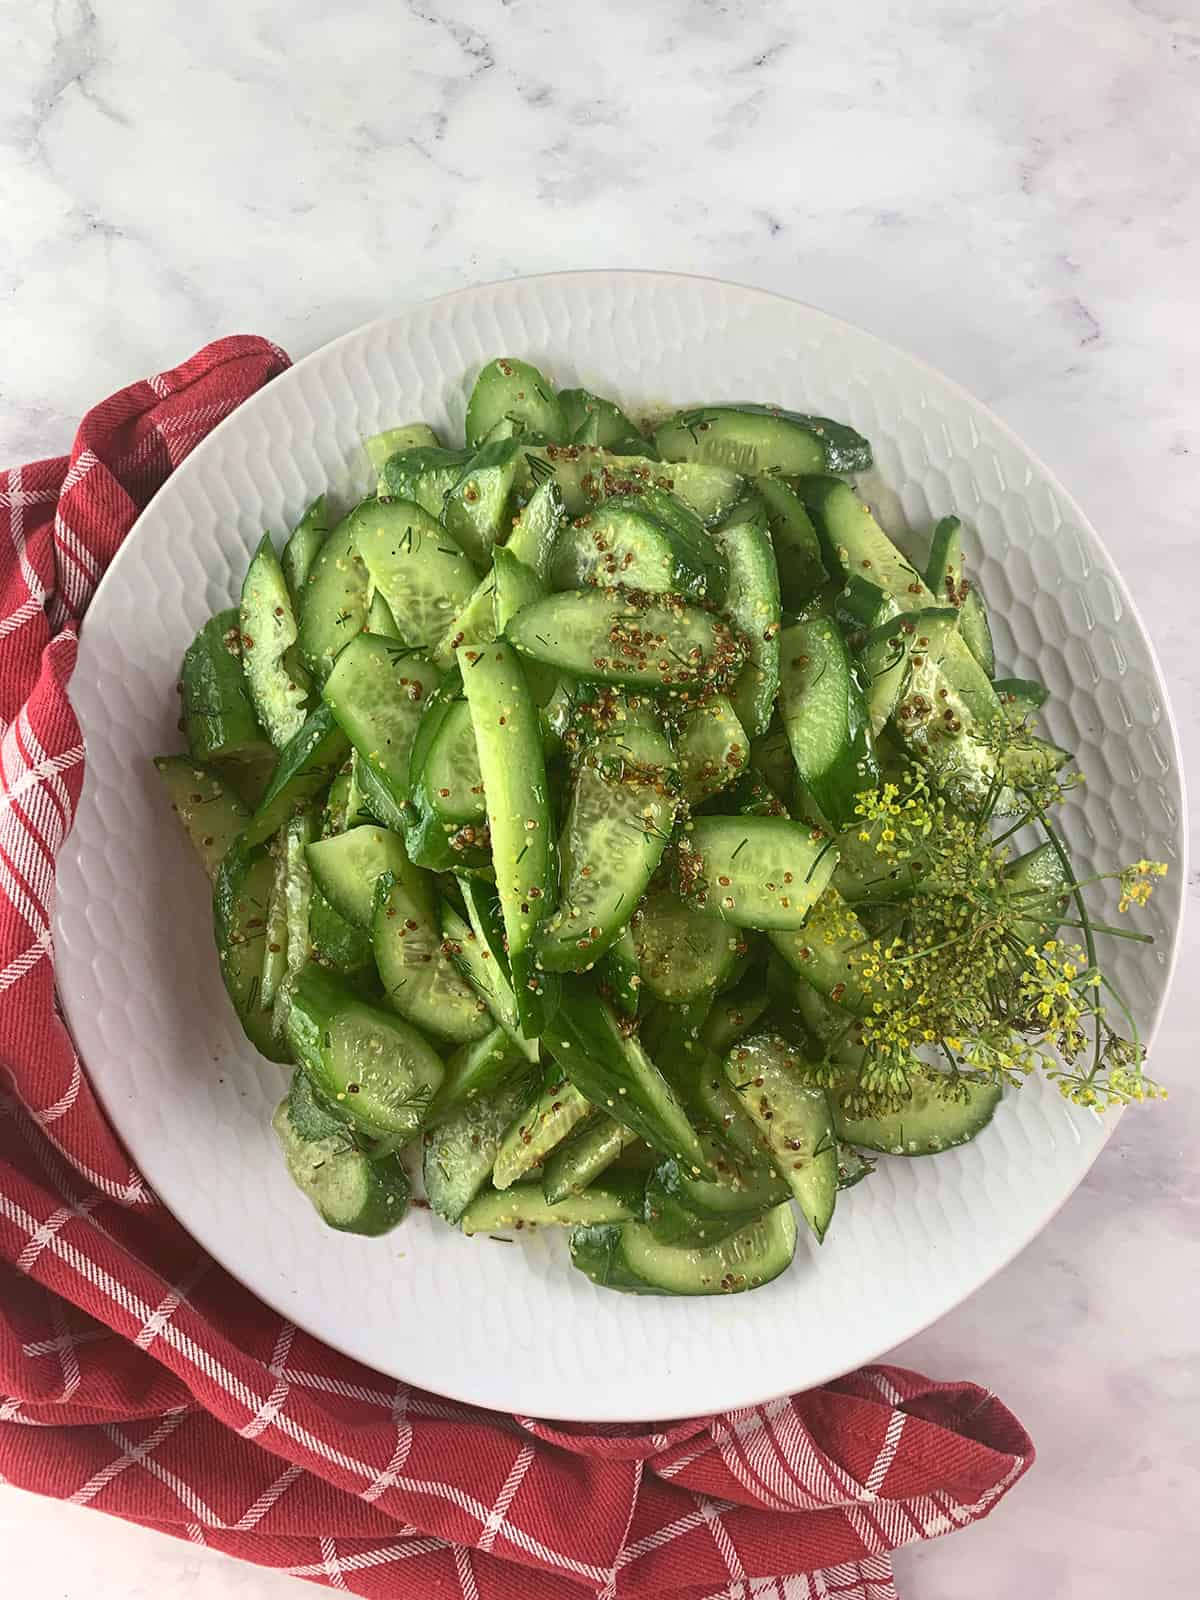 vegan cucmber with dill and whole grain mustard salad